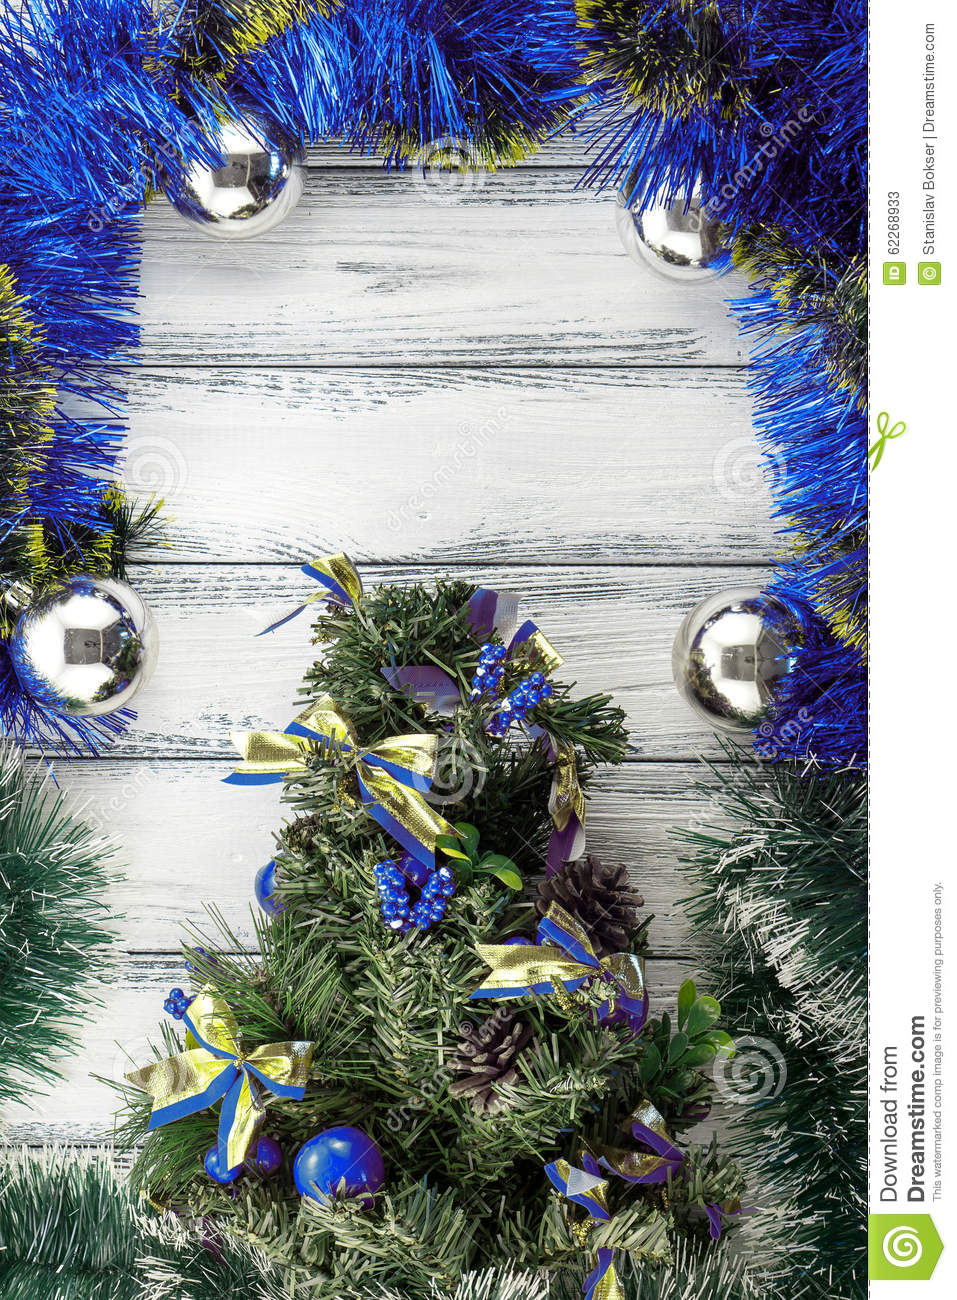 new year theme christmas tree with blue and green decoration and silver balls on white - Green Christmas Tree With Blue Decorations